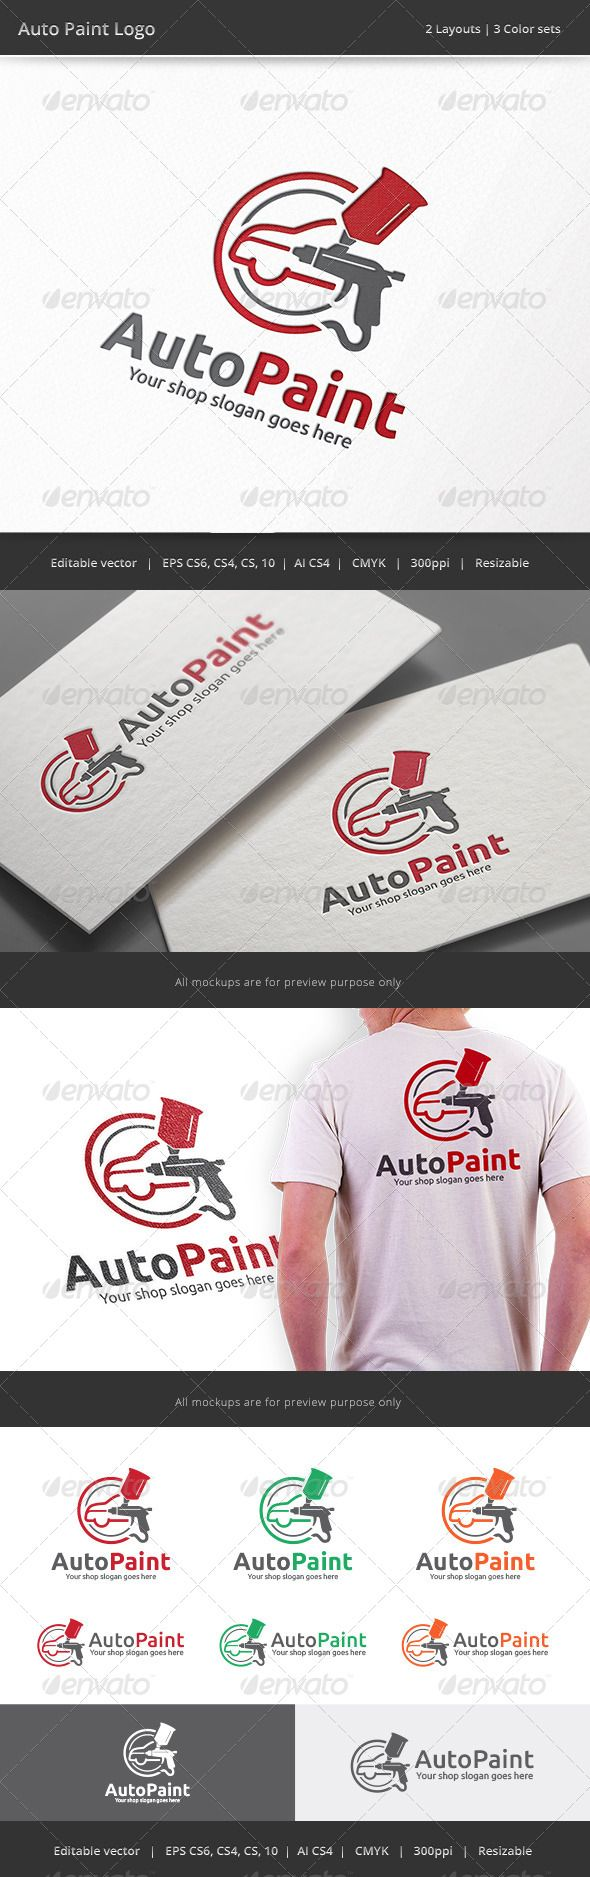 Auto Car Body Paint  - Logo Design Template Vector #logotype Download it here: http://graphicriver.net/item/auto-car-body-paint-logo/8517630?s_rank=115?ref=nexion